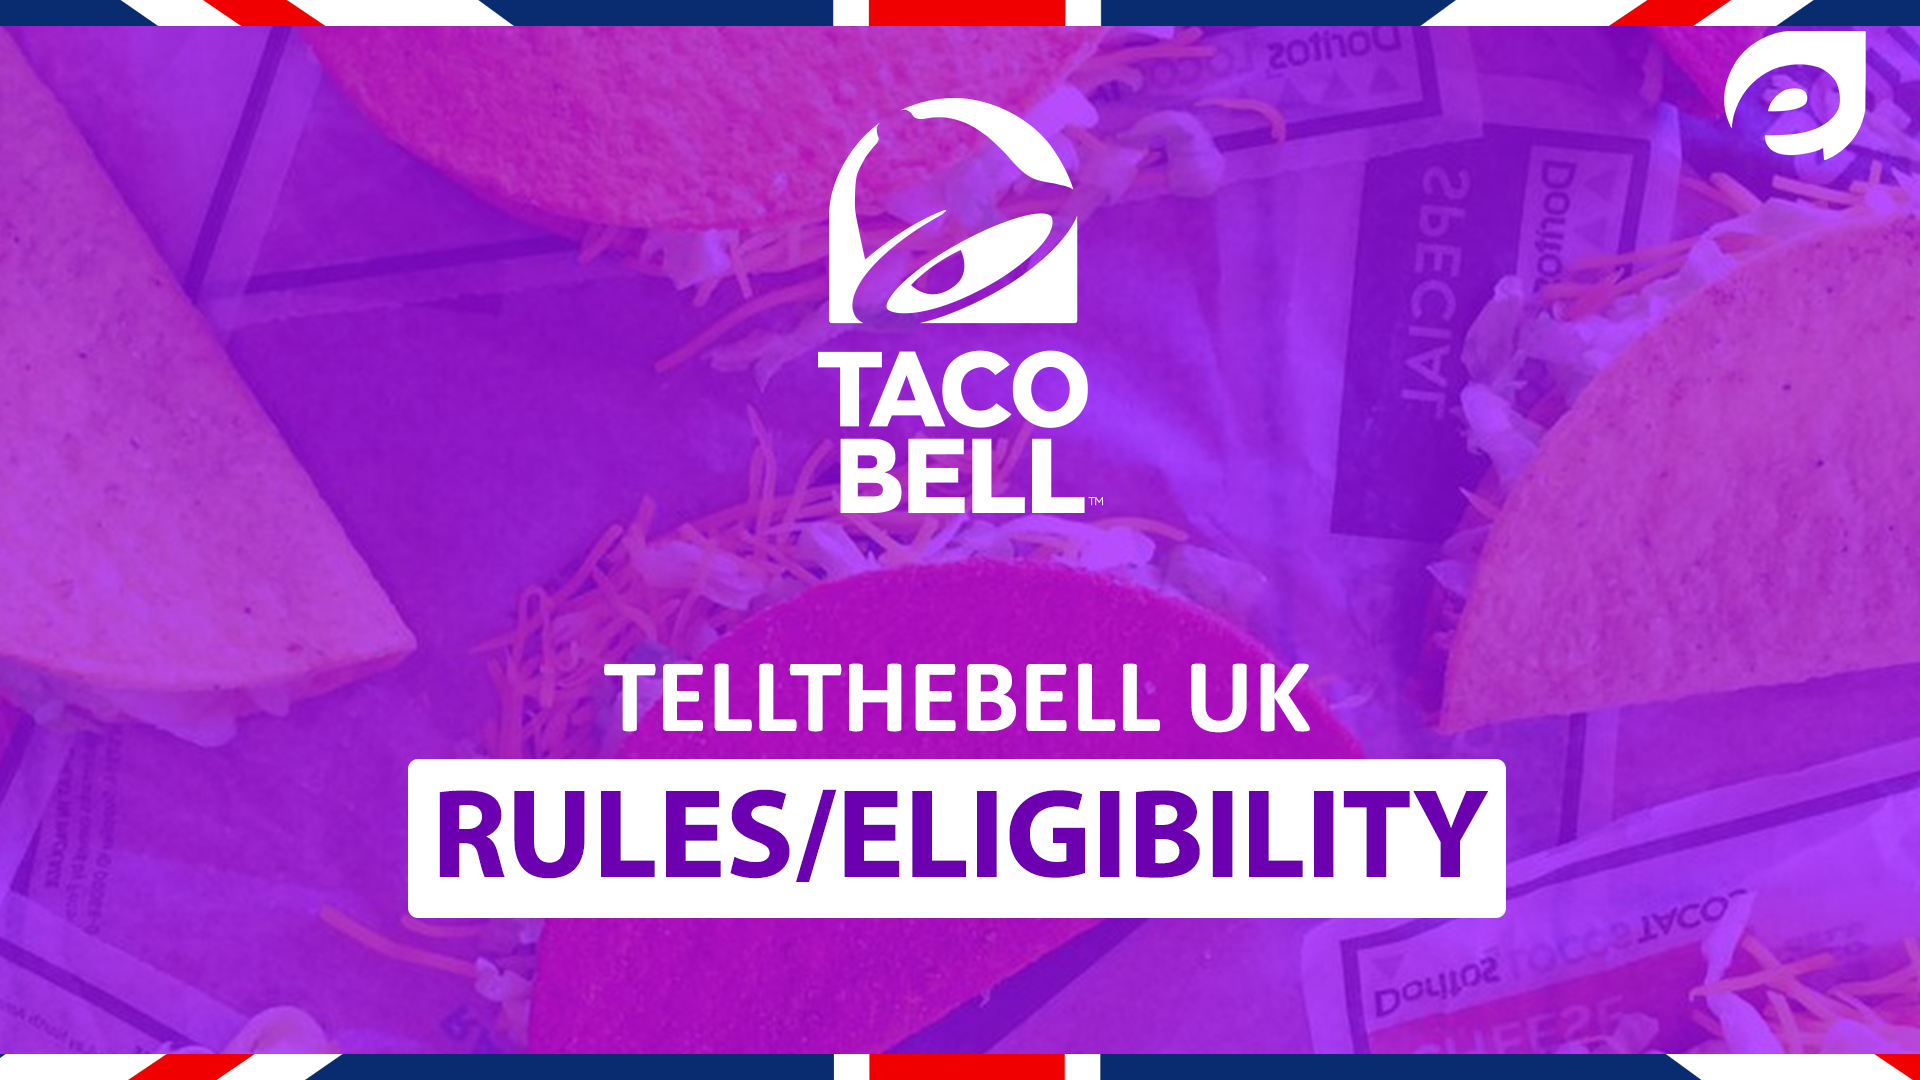 tellthebell uk - rules and eligibility